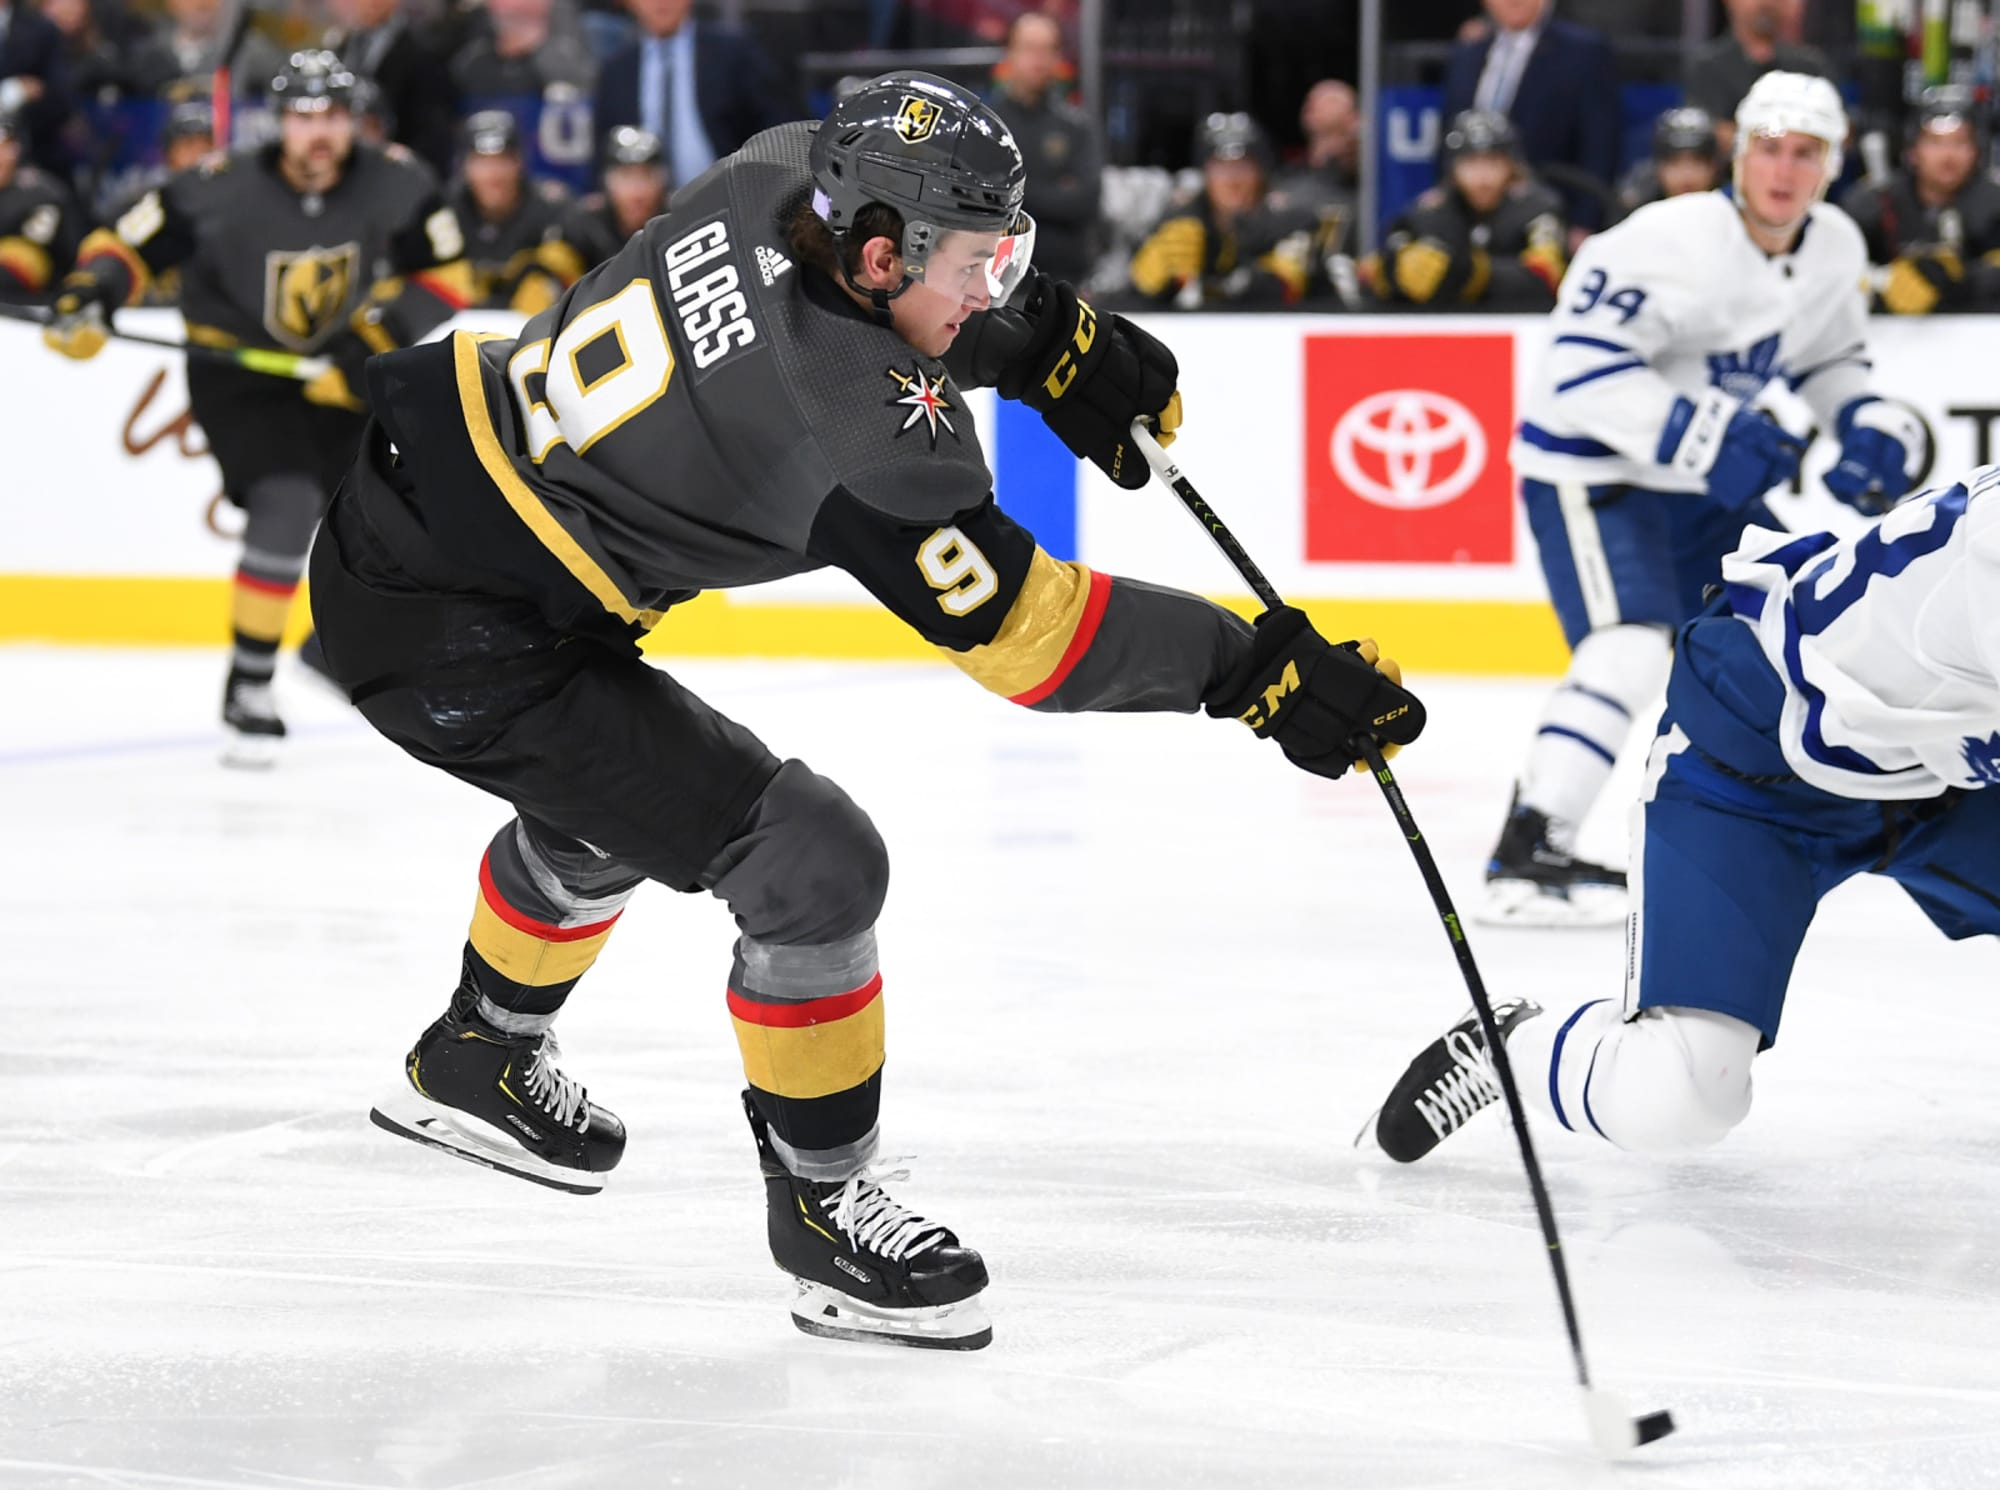 Vegas Golden Knights: A Cody Glass breakout in 2020-21 would be huge for player and team